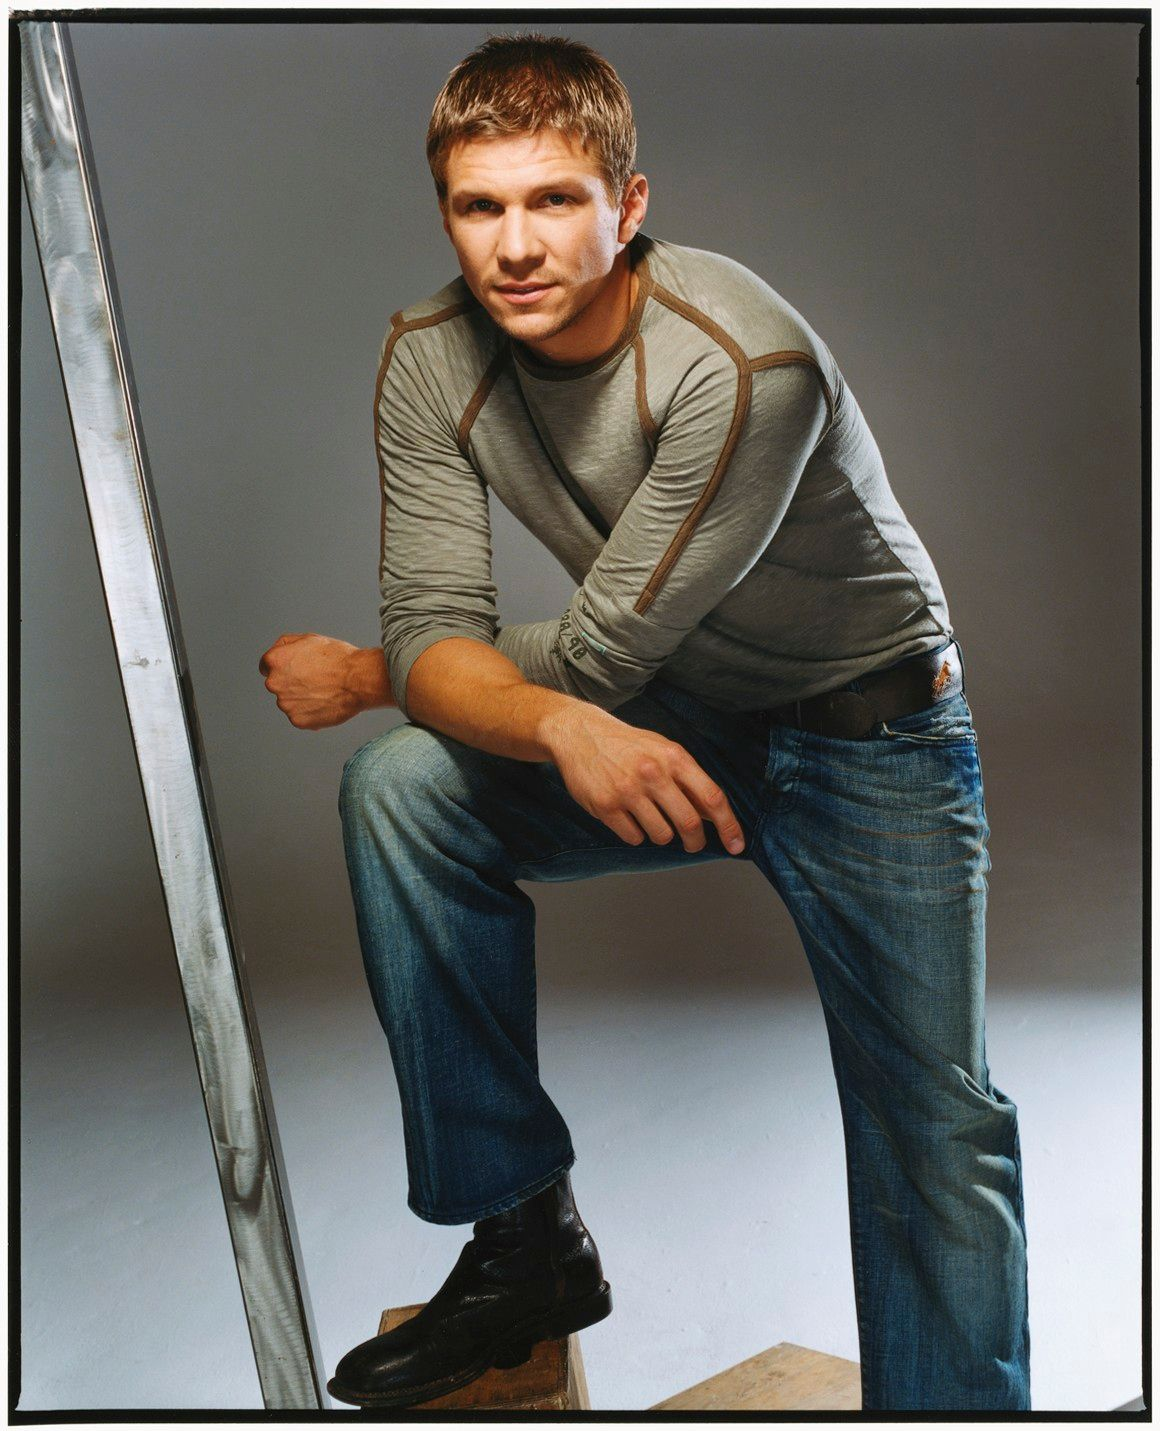 marc blucas gaymarc blucas and ryan haddon, marc blucas movies, marc blucas buffy, marc blucas wife, marc blucas instagram, marc blucas 2015, marc blucas facebook, marc blucas imdb, marc blucas wedding, marc blucas net worth, marc blucas ryan haddon, marc blucas y su esposa, marc blucas height, marc blucas and sarah michelle gellar, marc blucas shirtless, marc blucas twitter, marc blucas gay, marc blucas biography